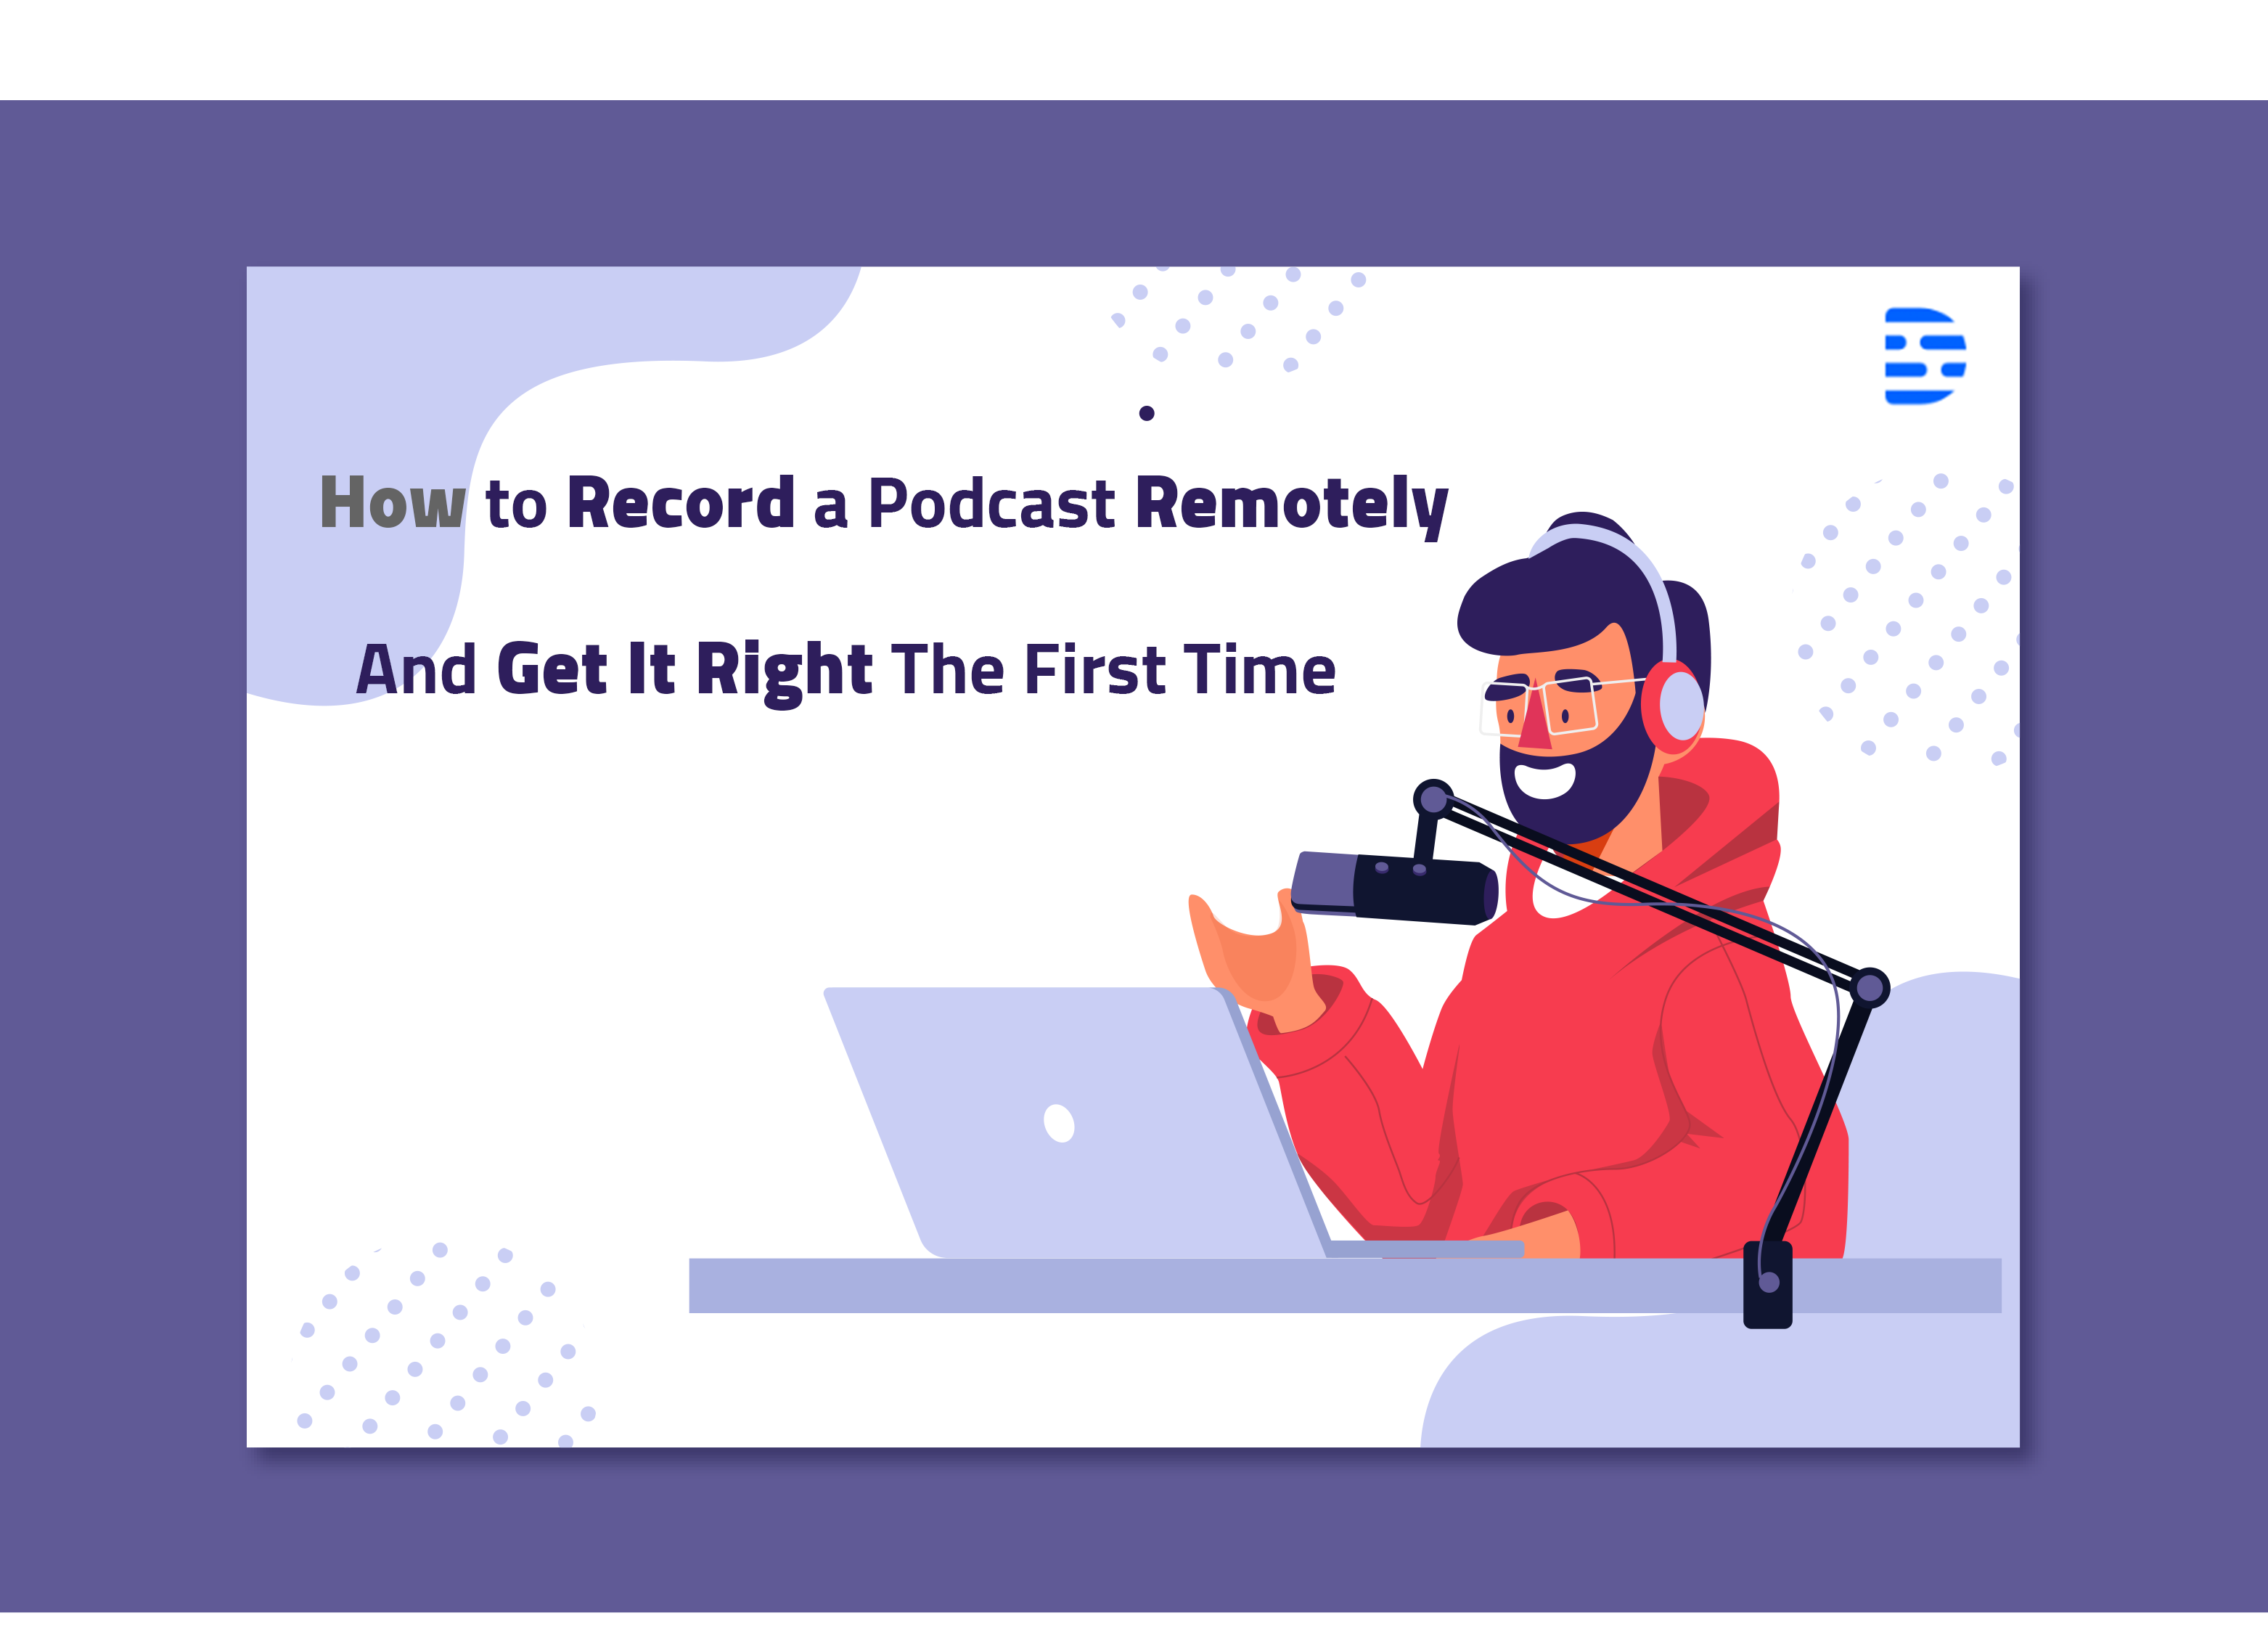 How to Record a Podcast Remotely And Get It Right The First Time By Descript